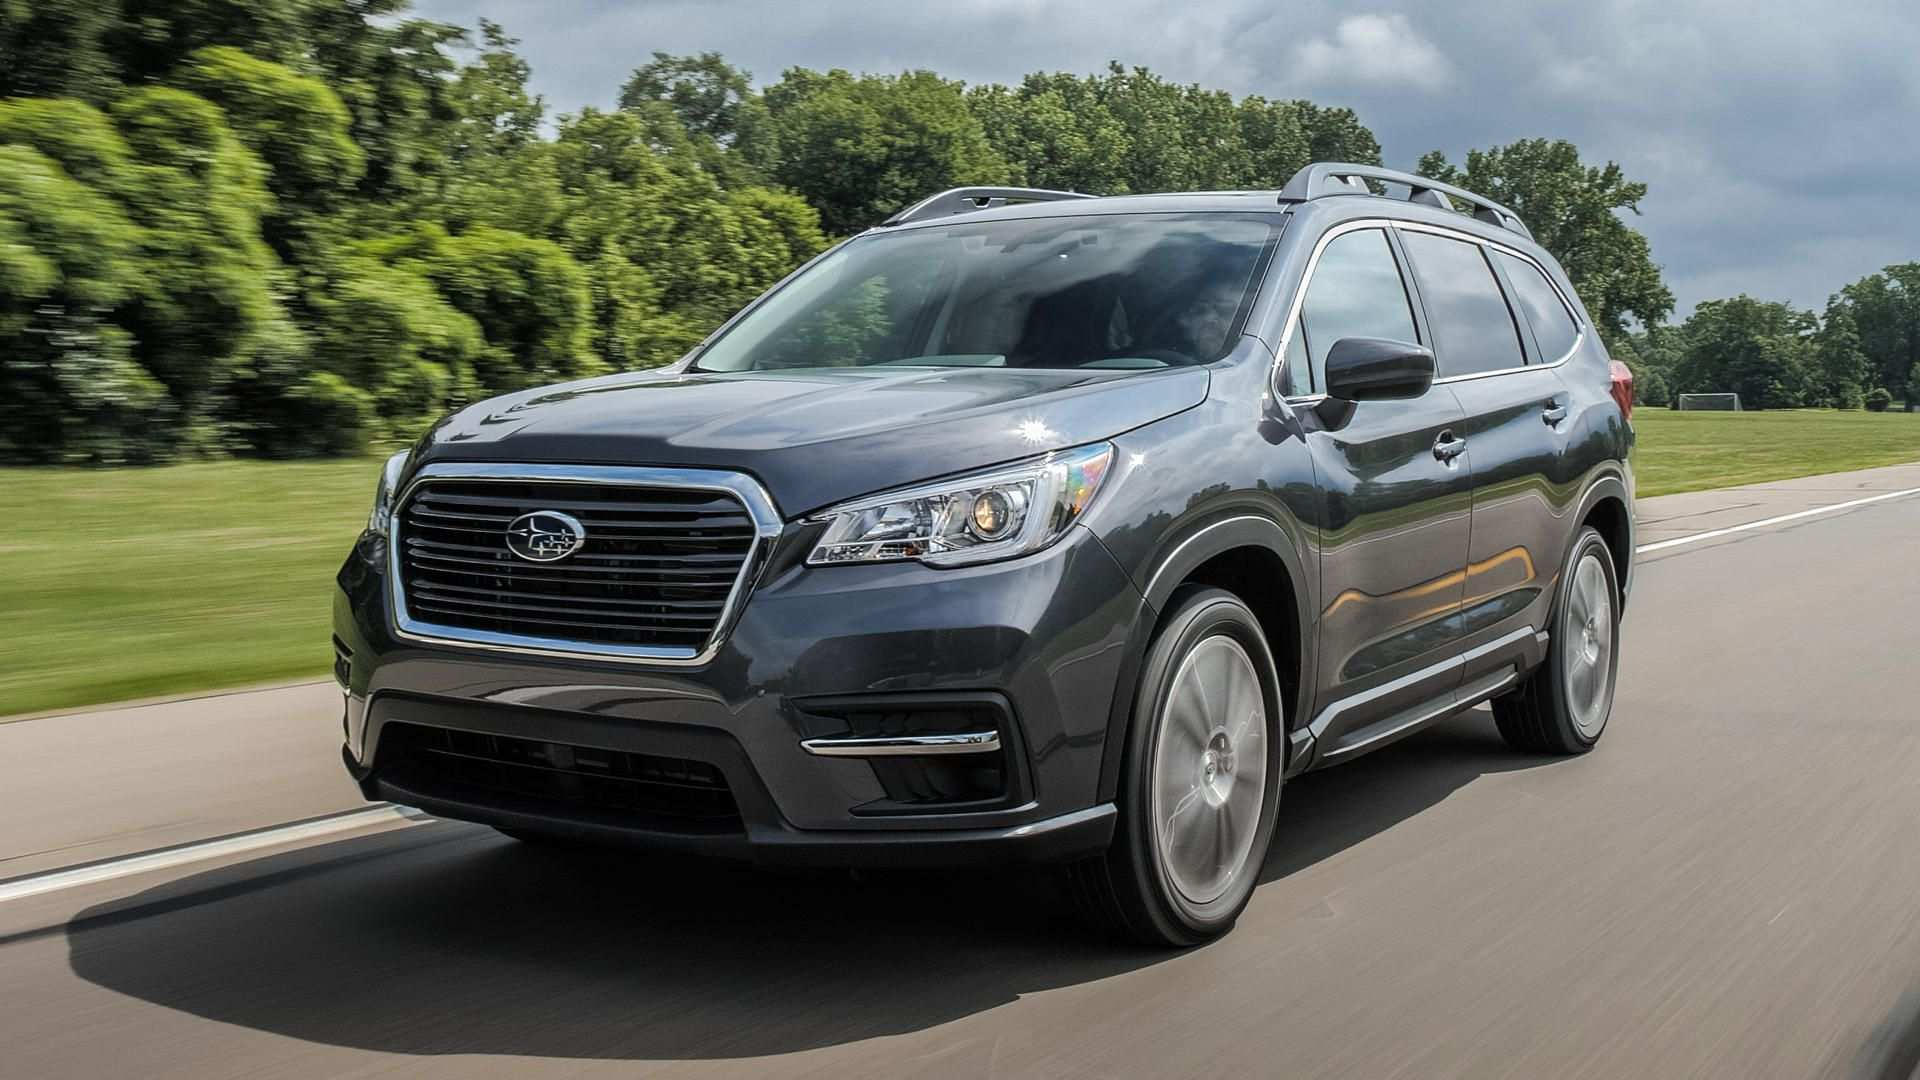 50 Concept of 2020 Subaru Ascent Dimensions Images for 2020 Subaru Ascent Dimensions